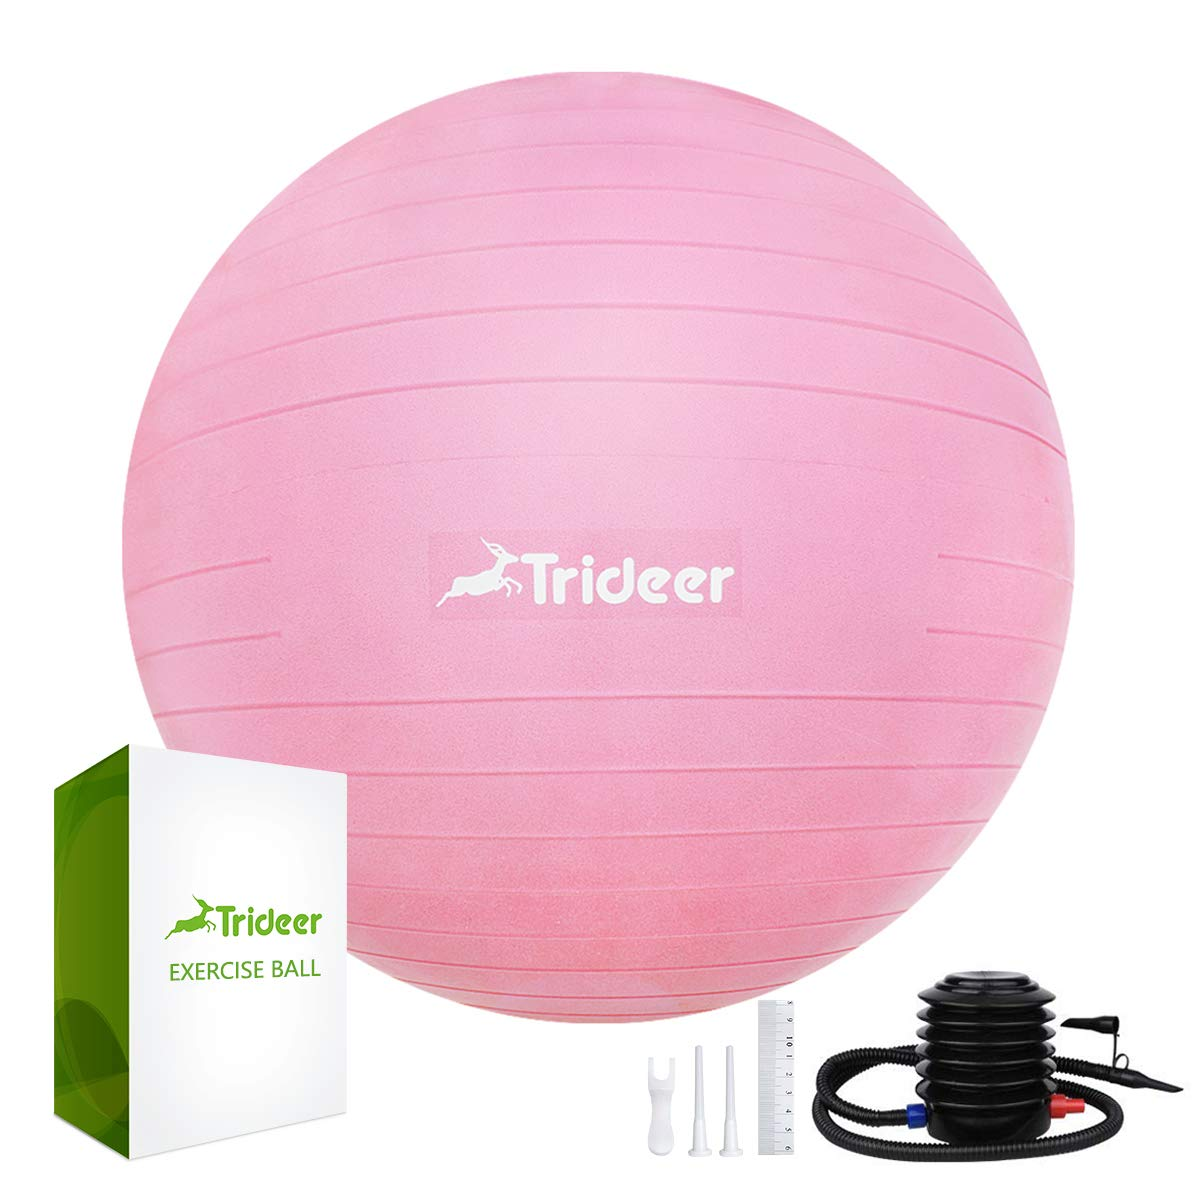 Trideer Hopper Ball Kids Exercise Ball Multi Function Jump Ball Bouncy Ball with Handles Kids Balance Ball and Ball Chair for Children Age 3 12 Air Pump Included